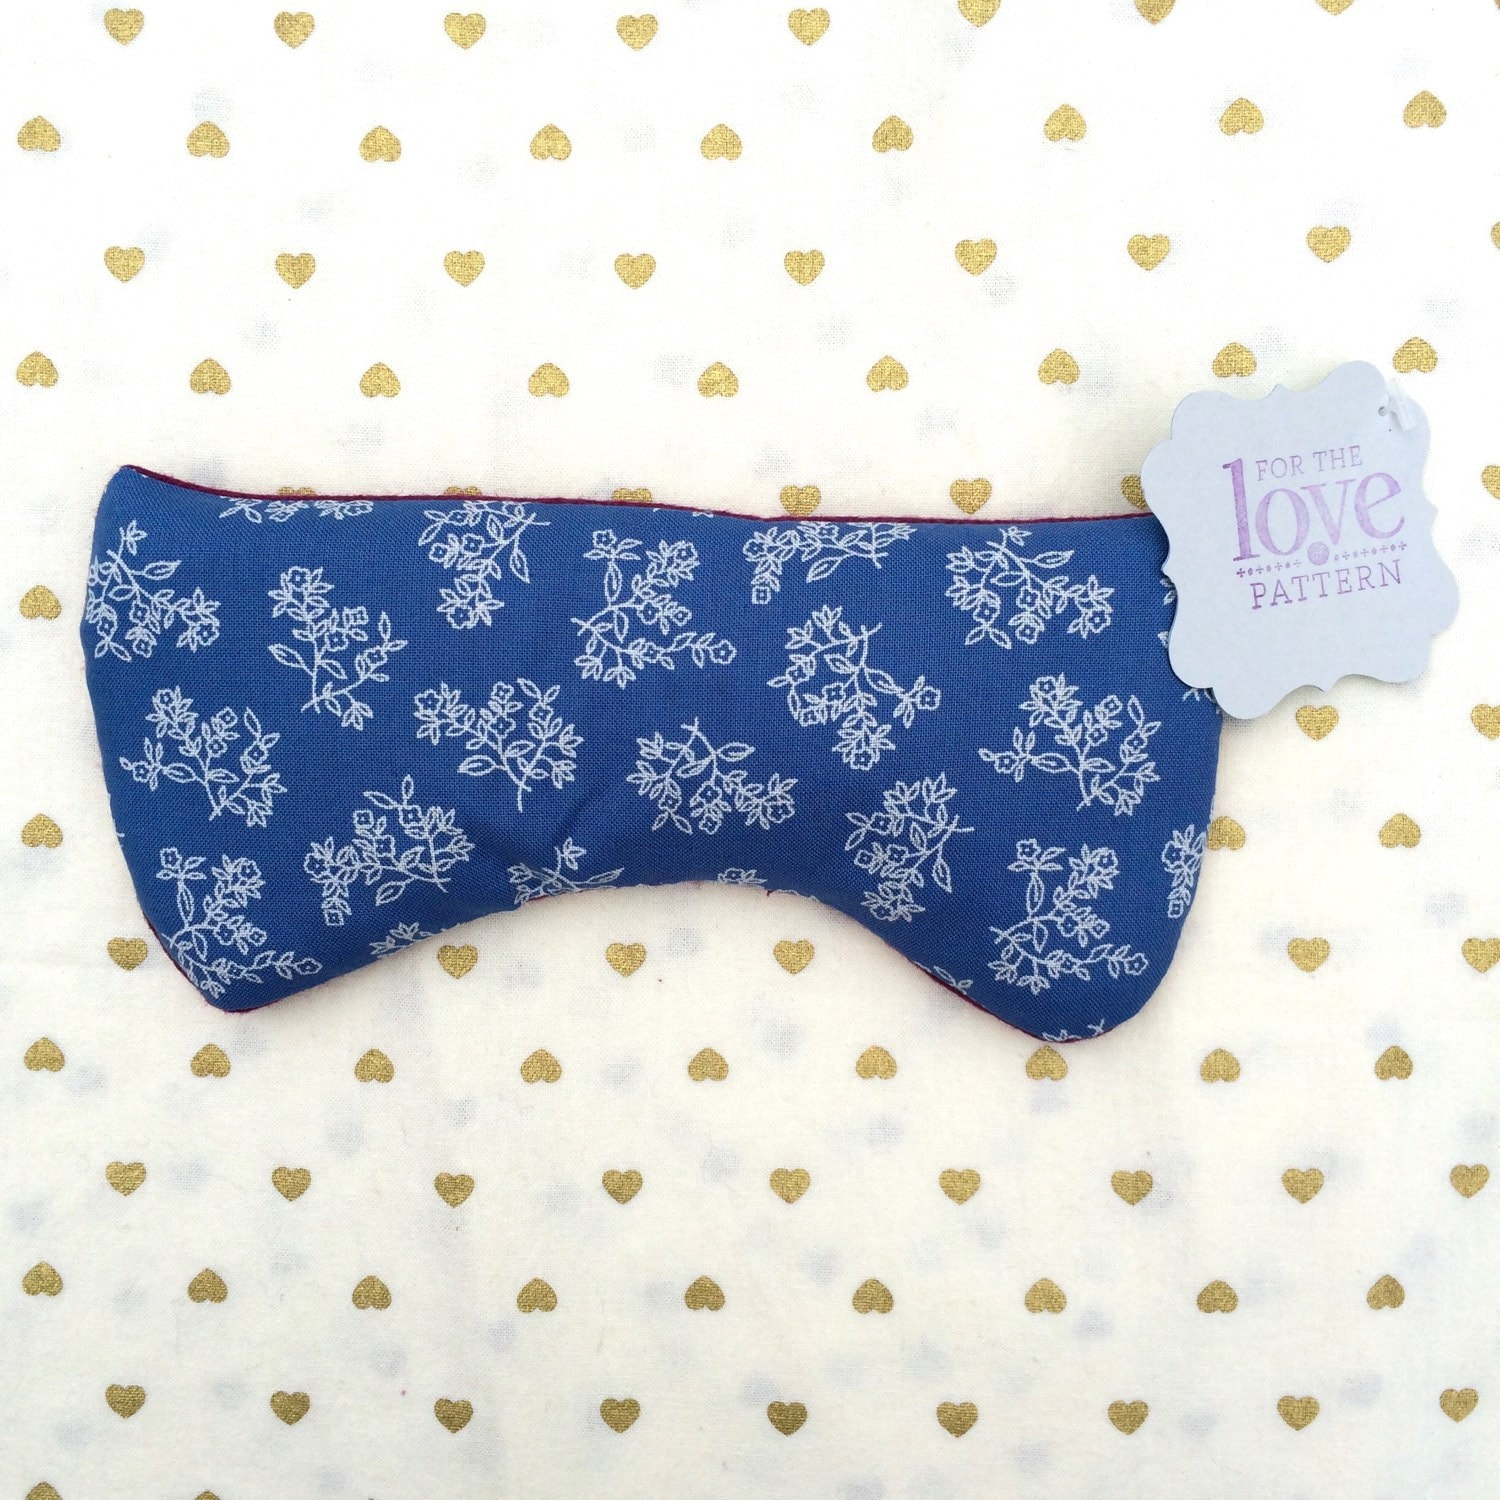 Lavender Eye Pillow by LoveofPattern on Etsy